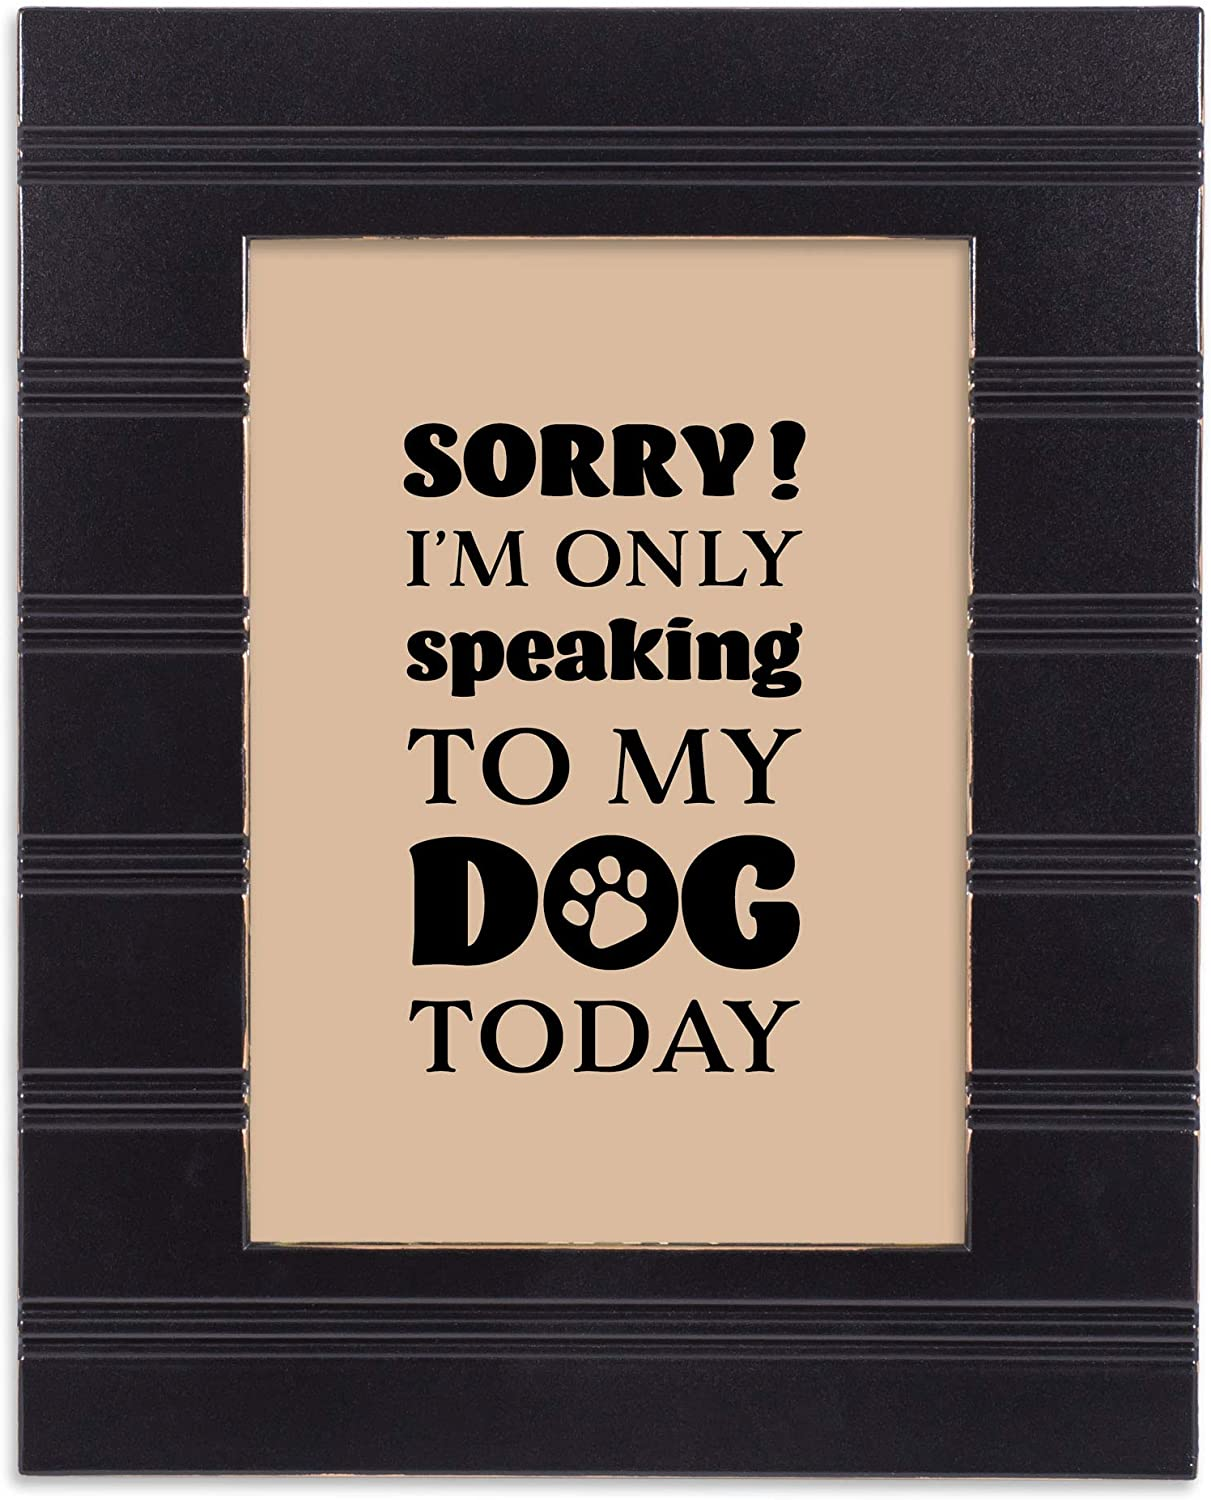 Elanze Designs Speaking to My Dog Midnight Black 5 x 7 Beaded Board Wood Picture Frame Plaque